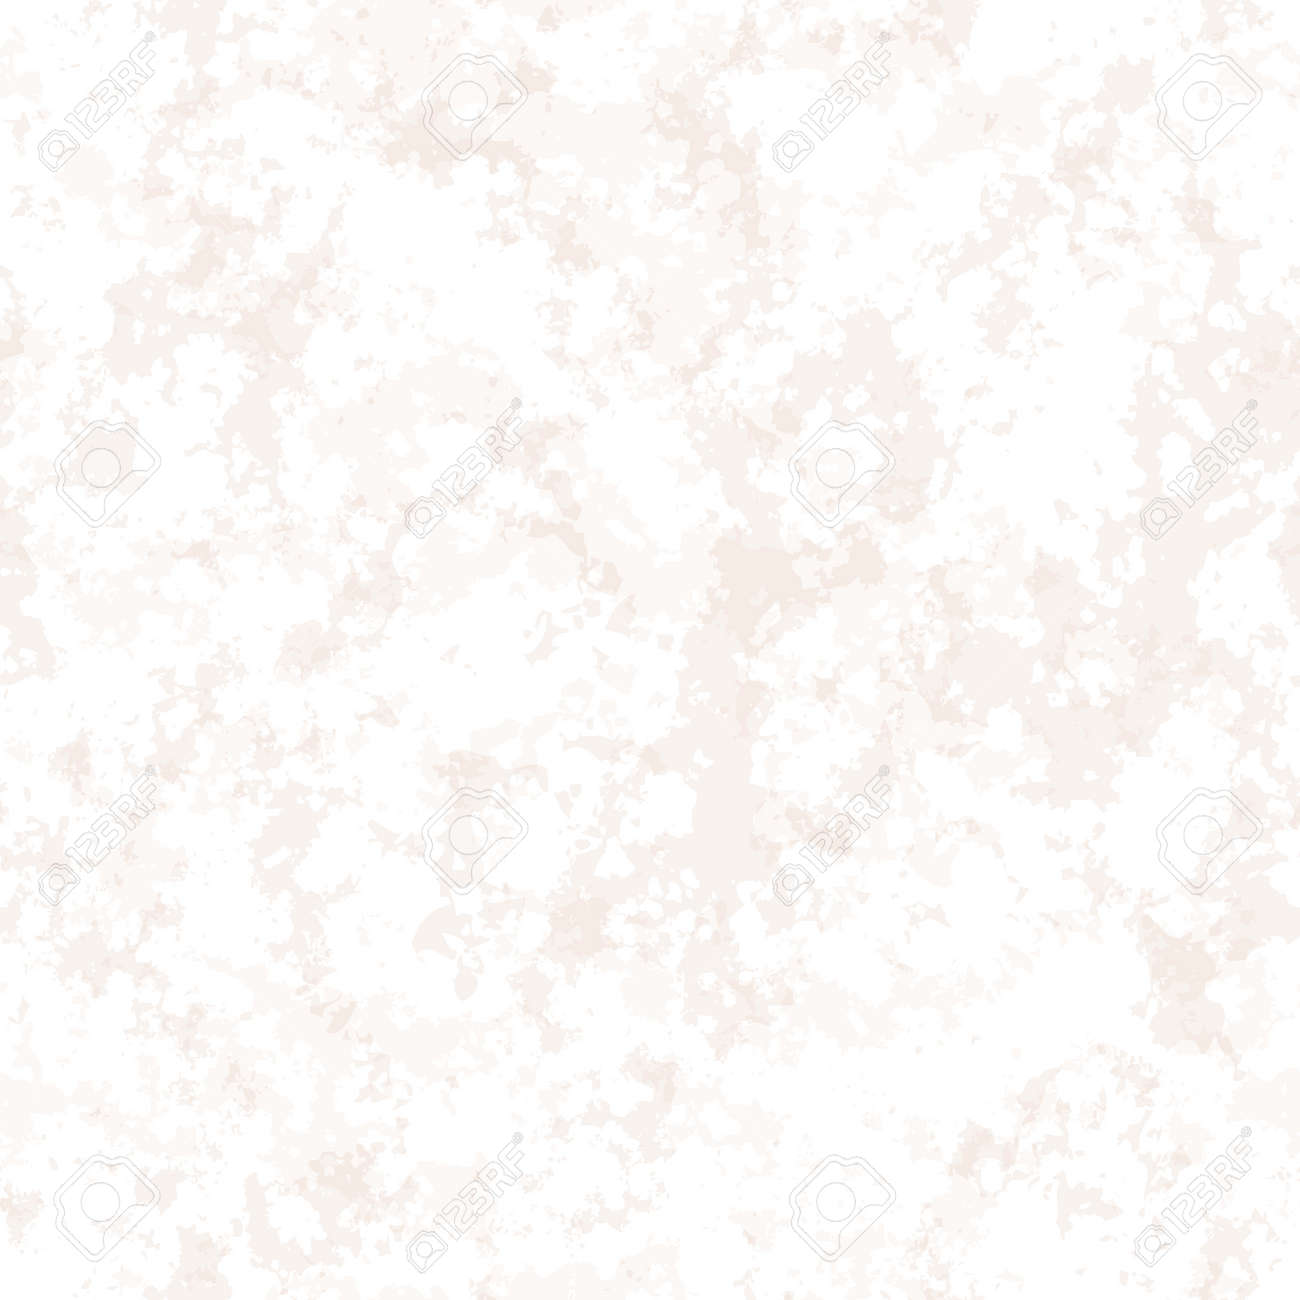 Wonderful Wallpaper Marble Light Pink - 34391905-abstract-light-pink-seamless-pattern-like-as-marble  Photograph_756668.jpg